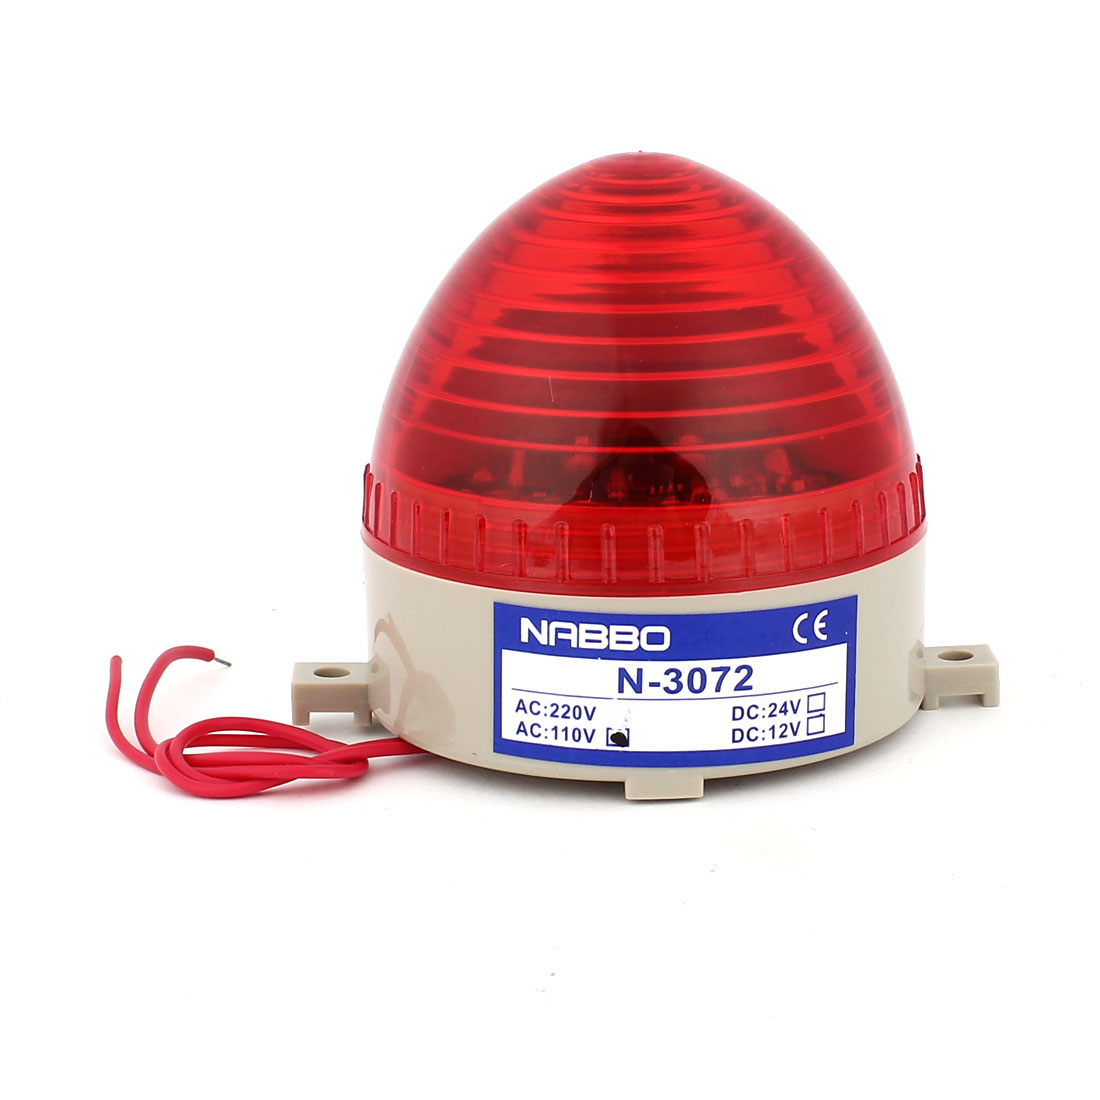 Industrial AC 110V Red LED Blinking Warning Light Bulb Signal Tower Lamp N-3072